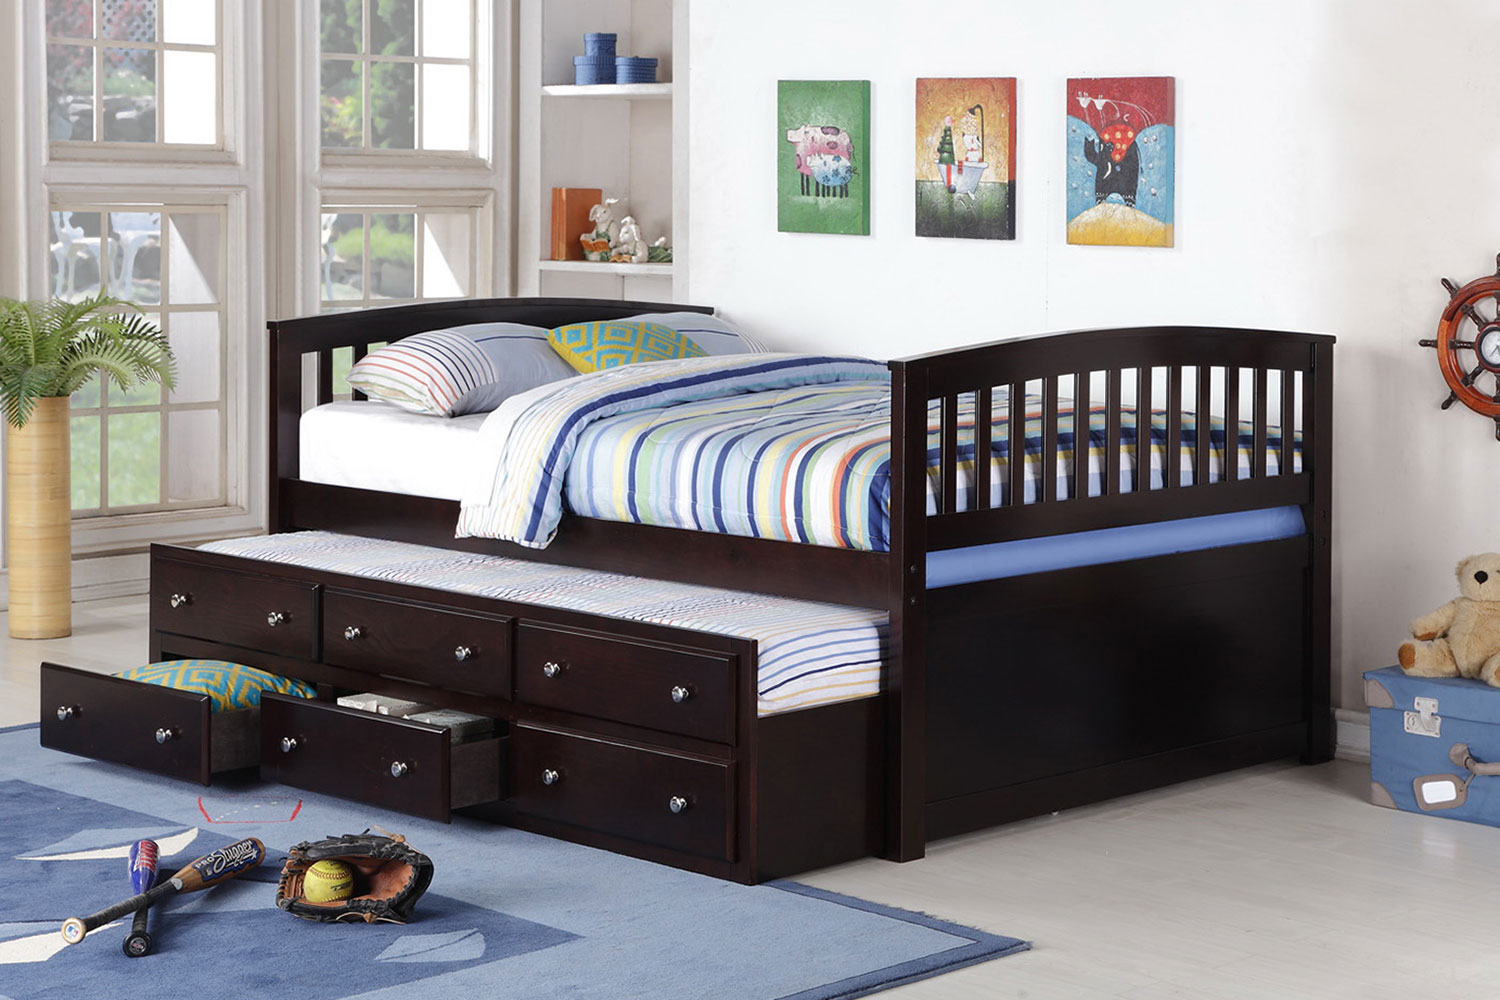 Brand New 13pc Slats Full Size Captain Bed In Espresso Finish With Trundle  U0026 Storage 80